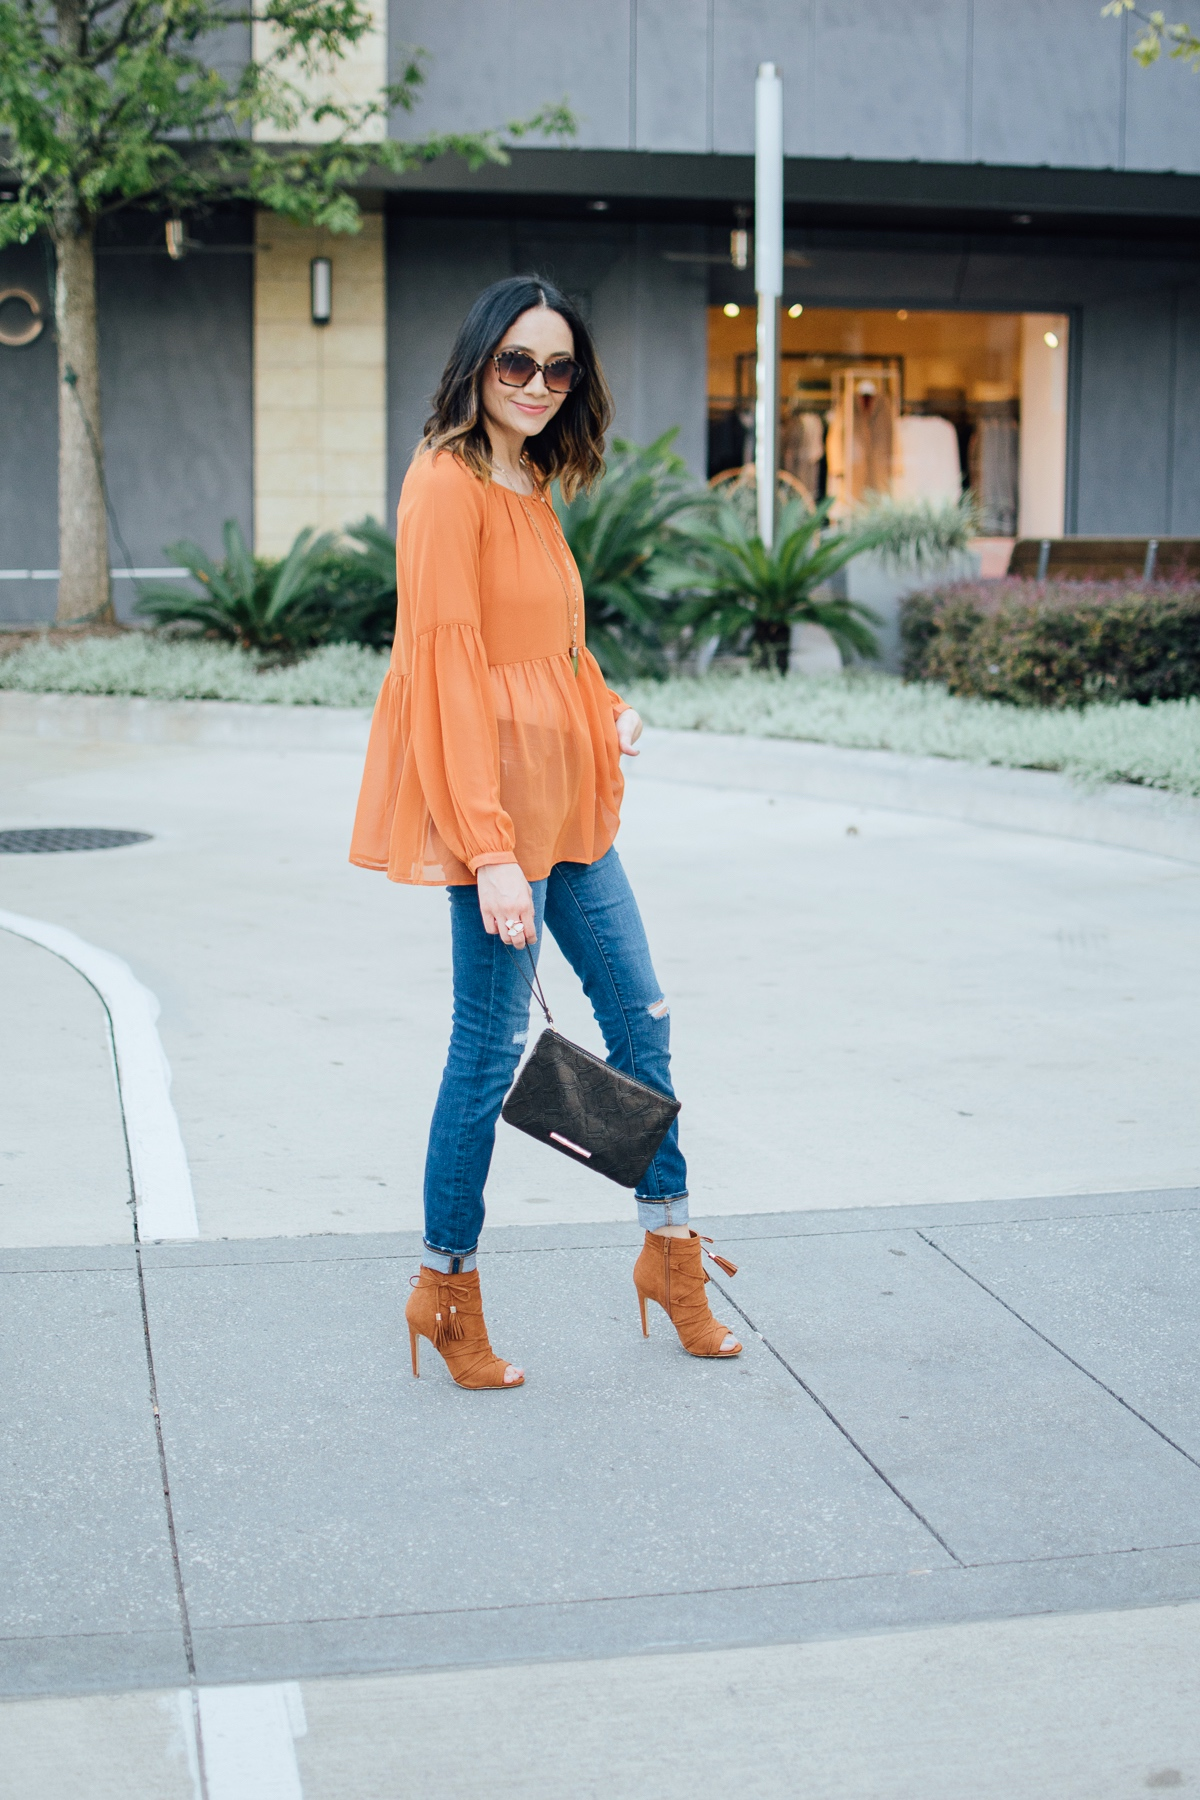 Lilly Beltran of Daily Craving in a long sleeve orange top and squared sunglasses